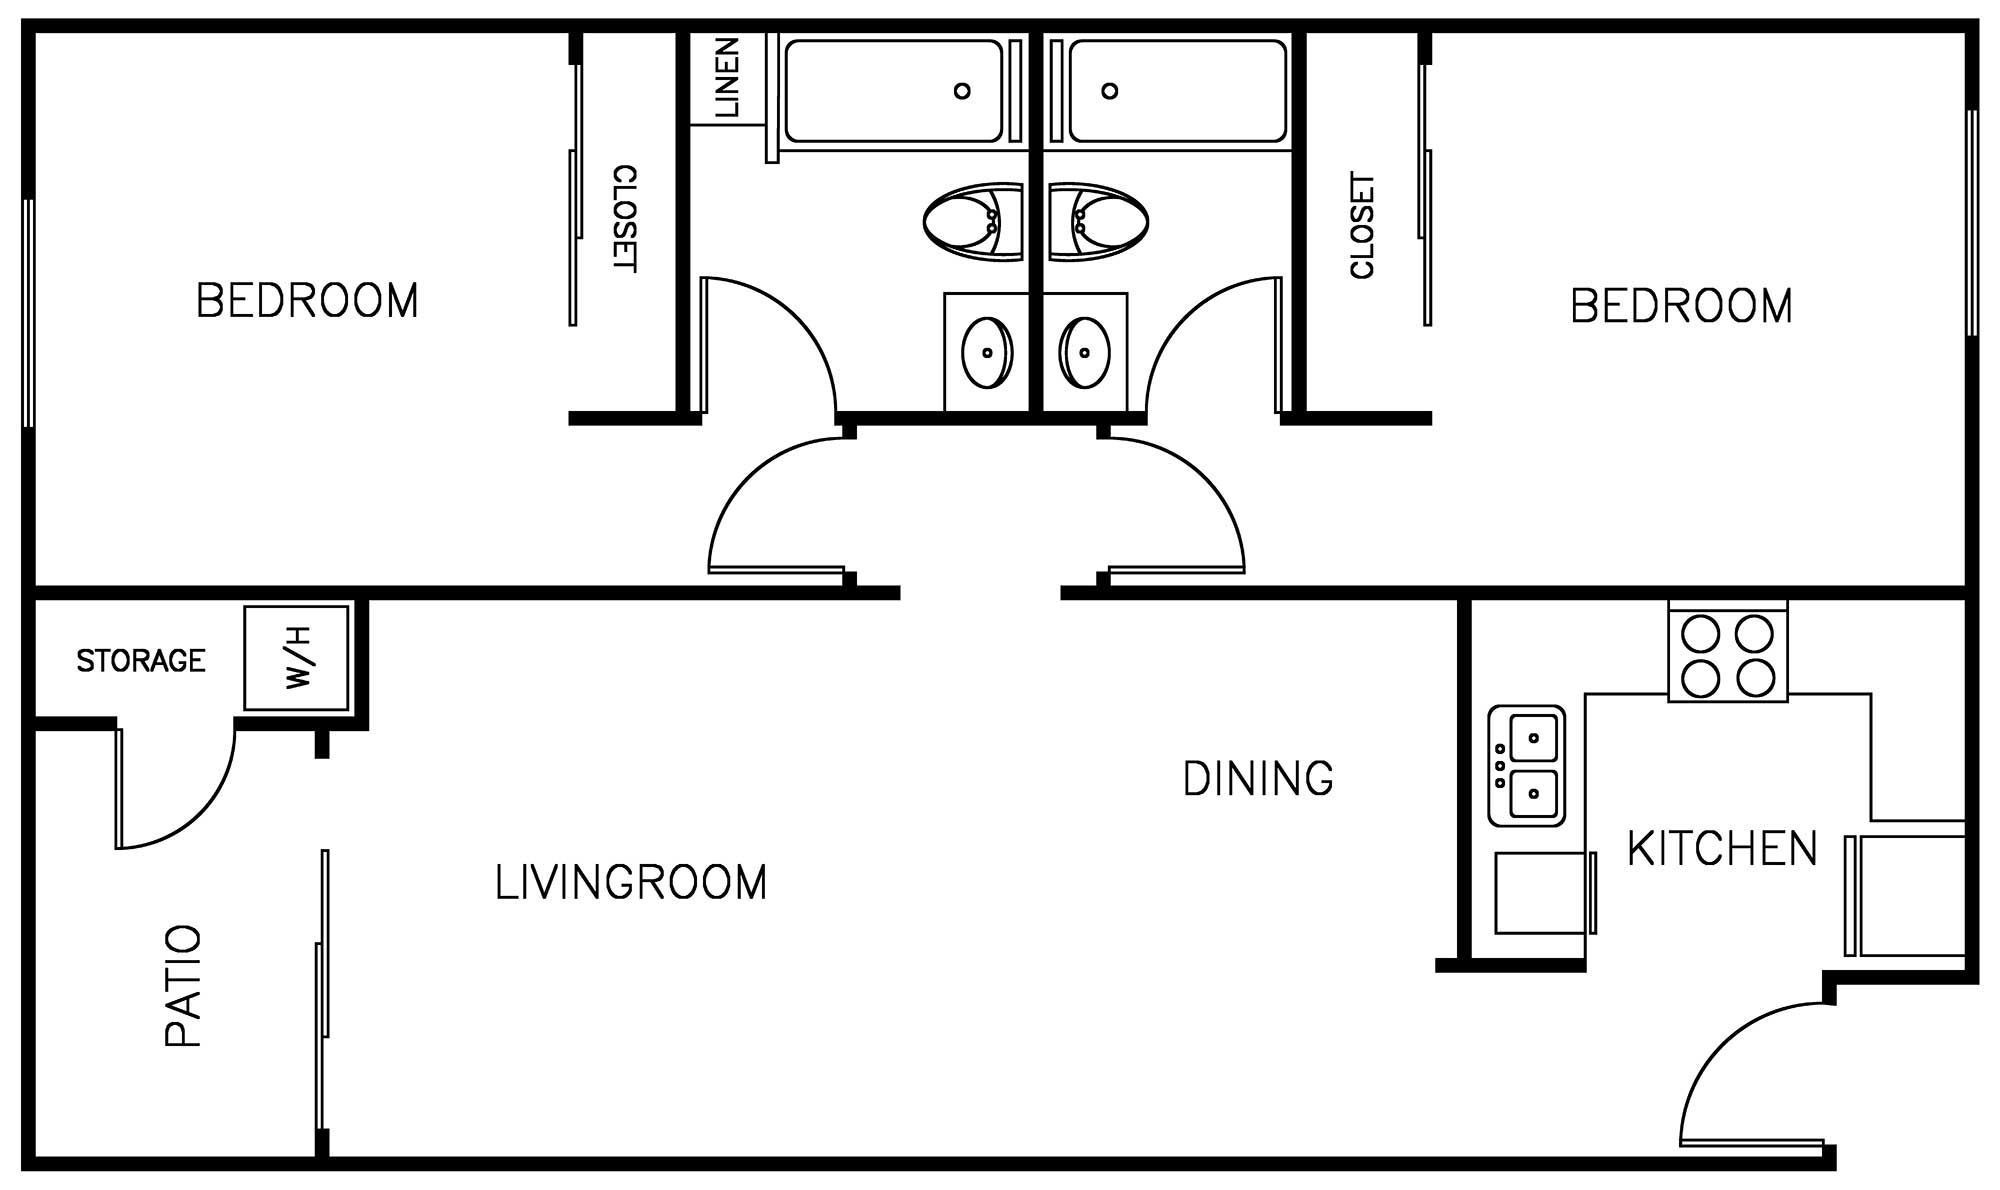 Durfee Terrace Apartments: 2 Bedroom floor plan